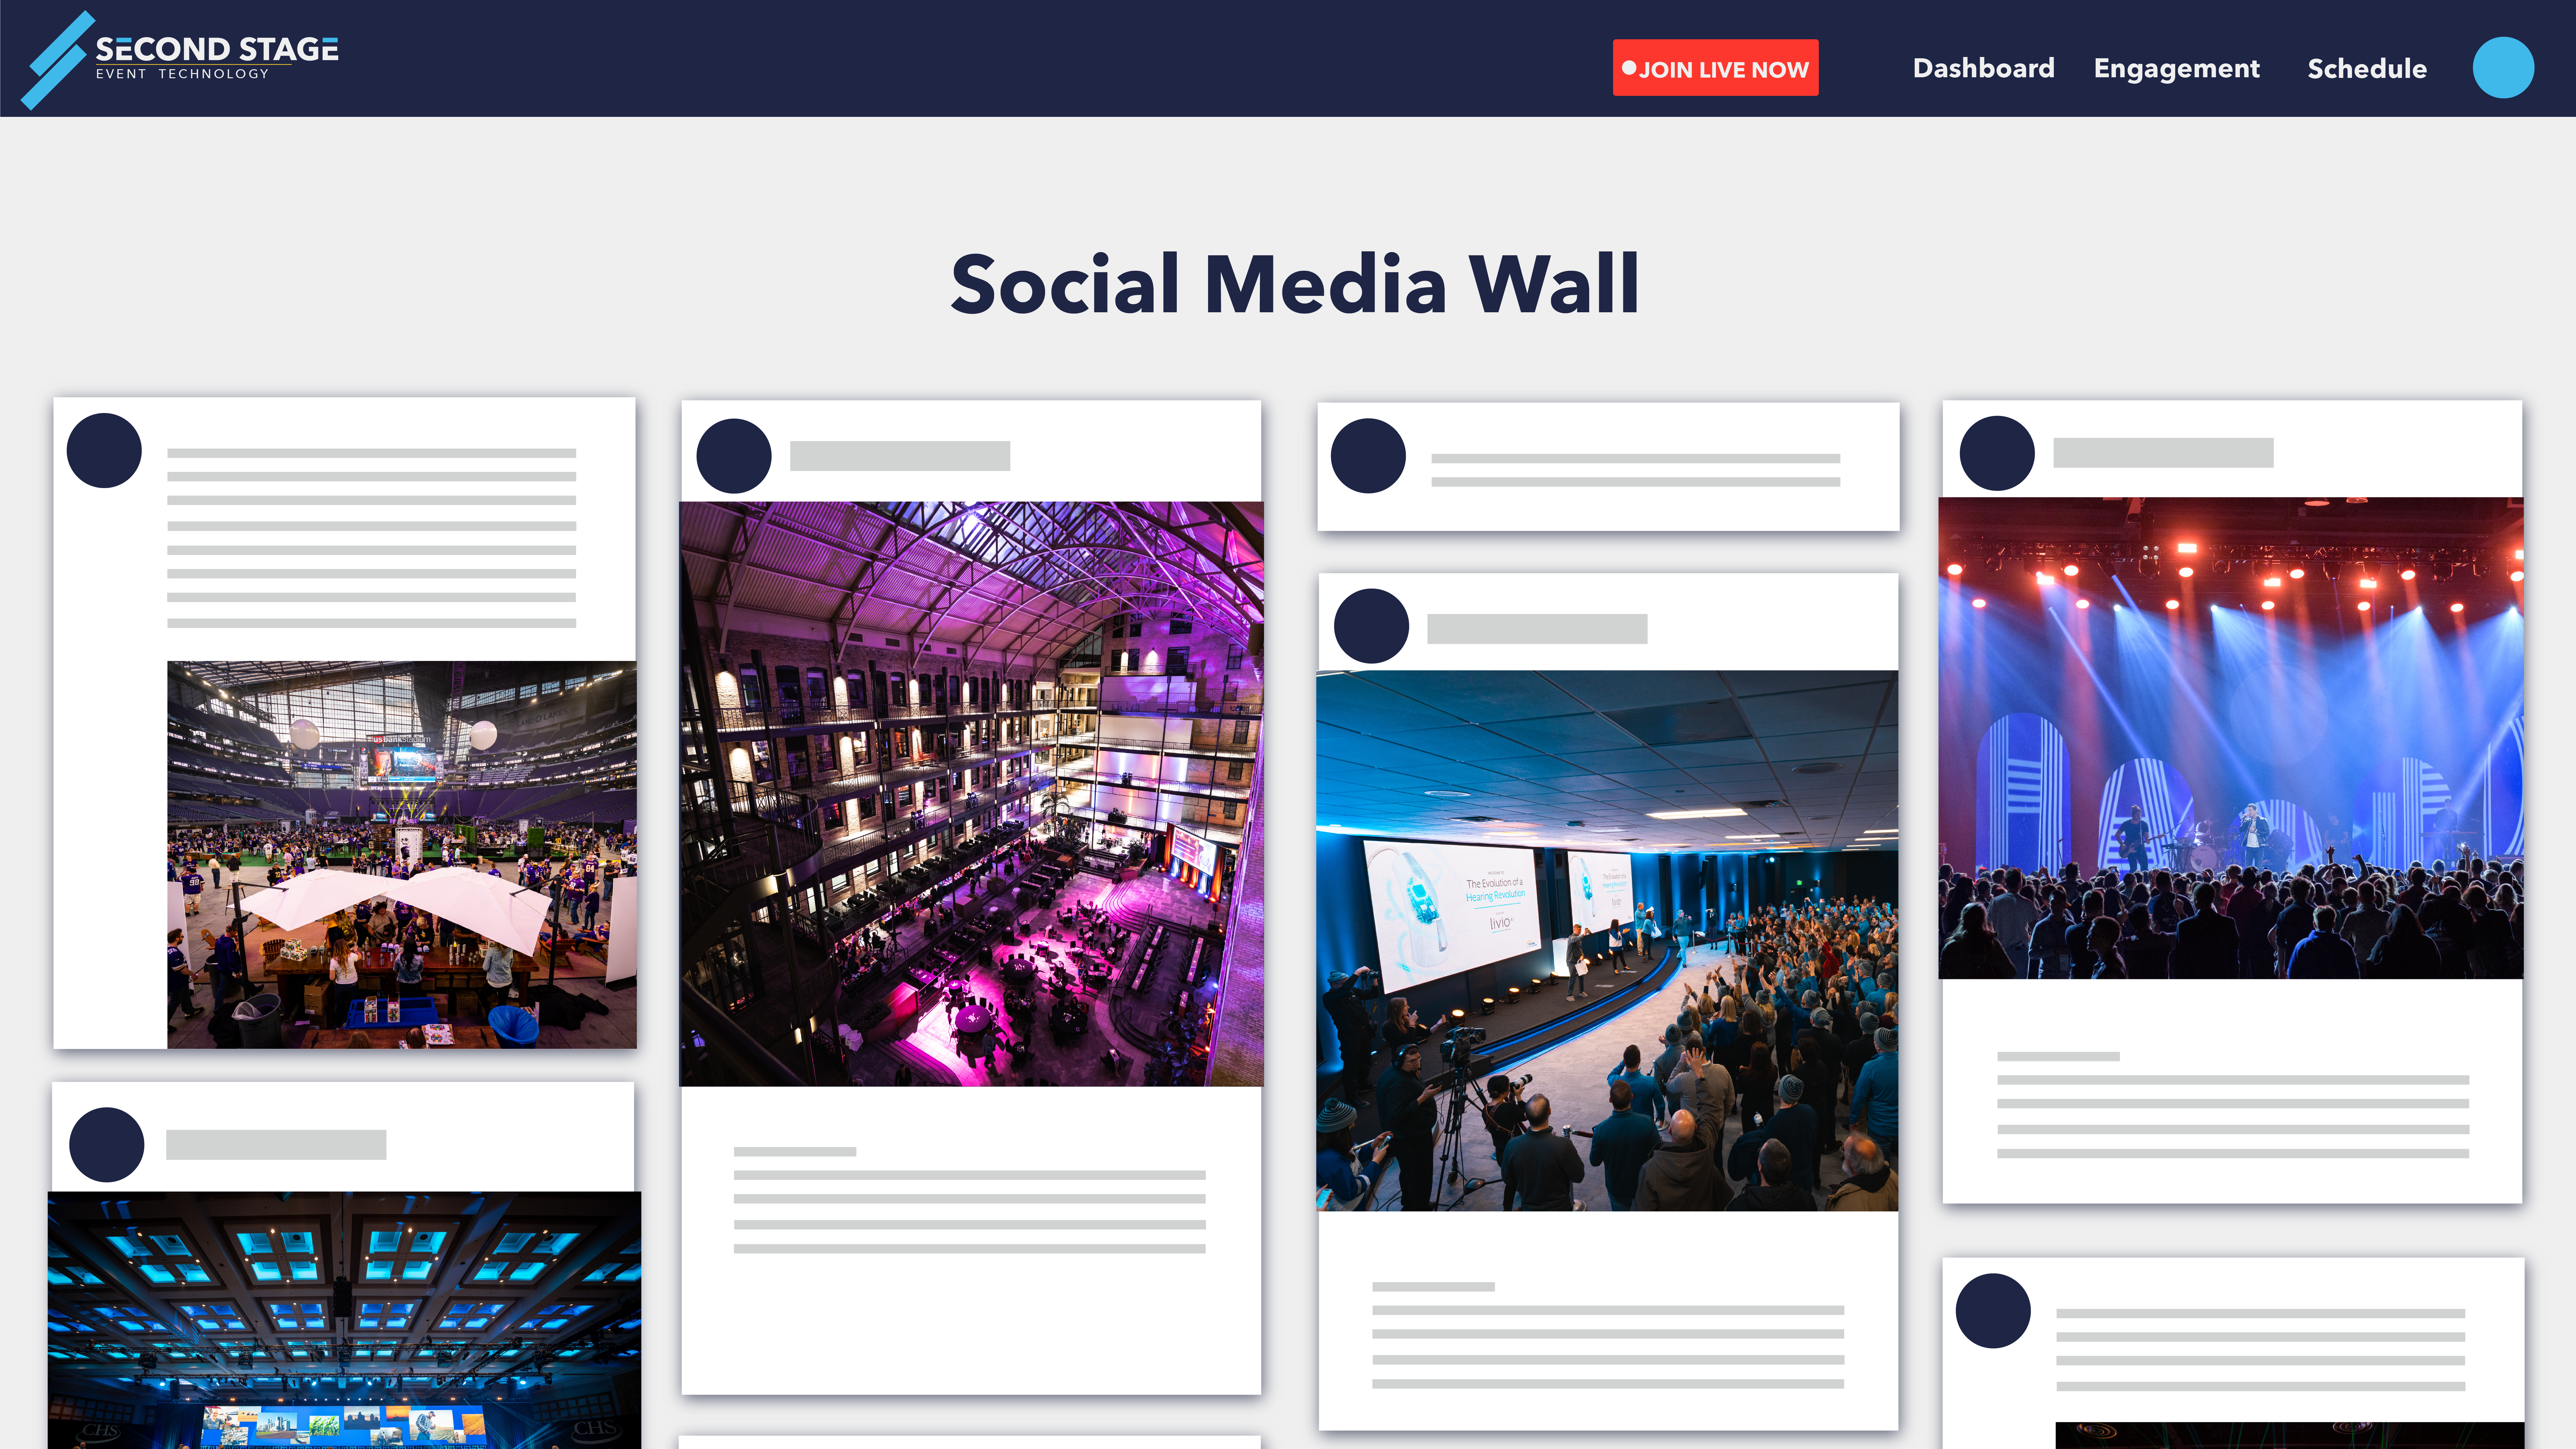 Second Stage Social Media Aggregation